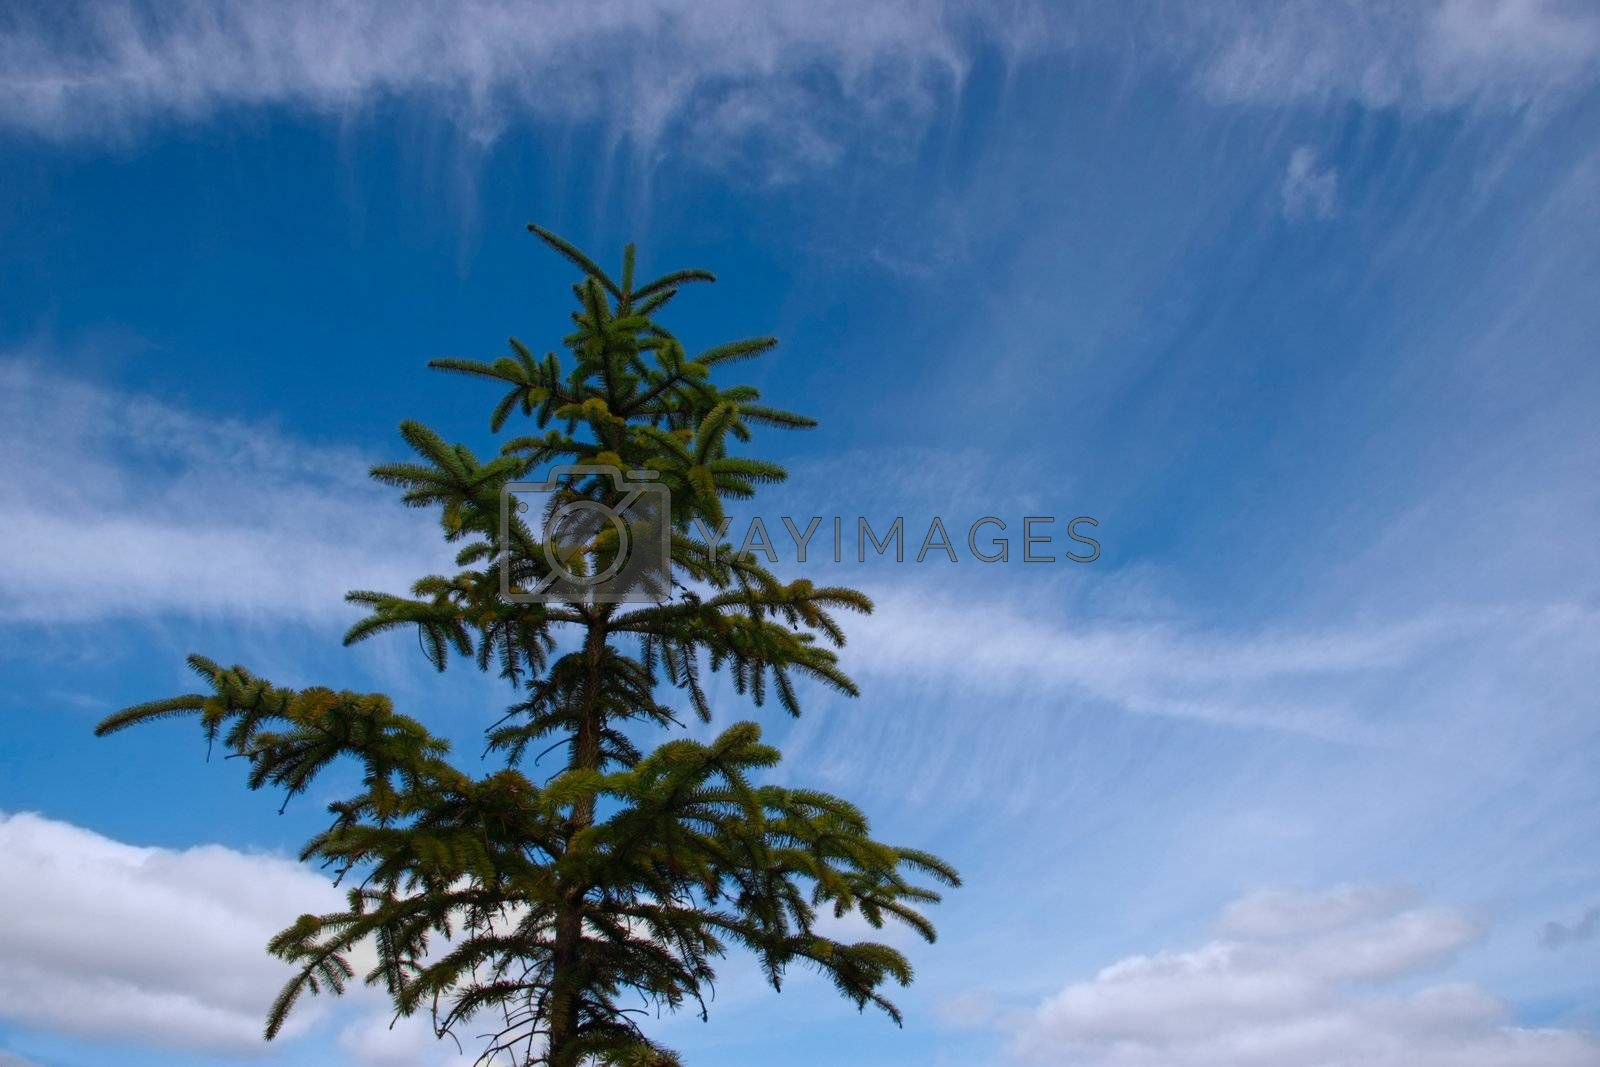 a lone conifer tree against a cloudy background